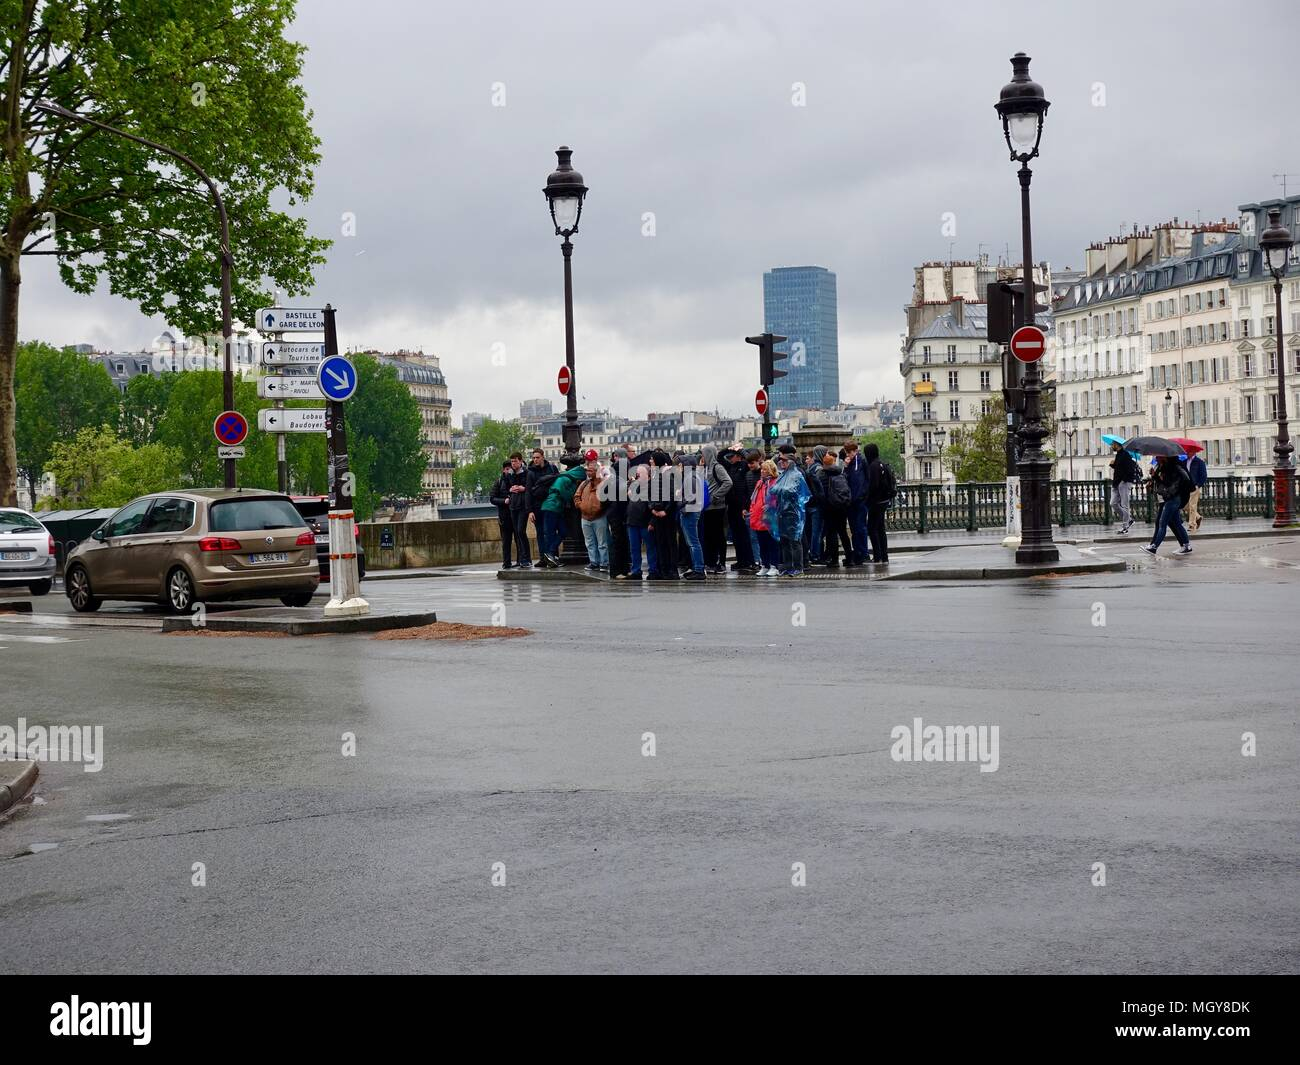 A crowd of tourists wait in the rain to cross the road in front of the Hôtel de Ville, Paris, France. - Stock Image